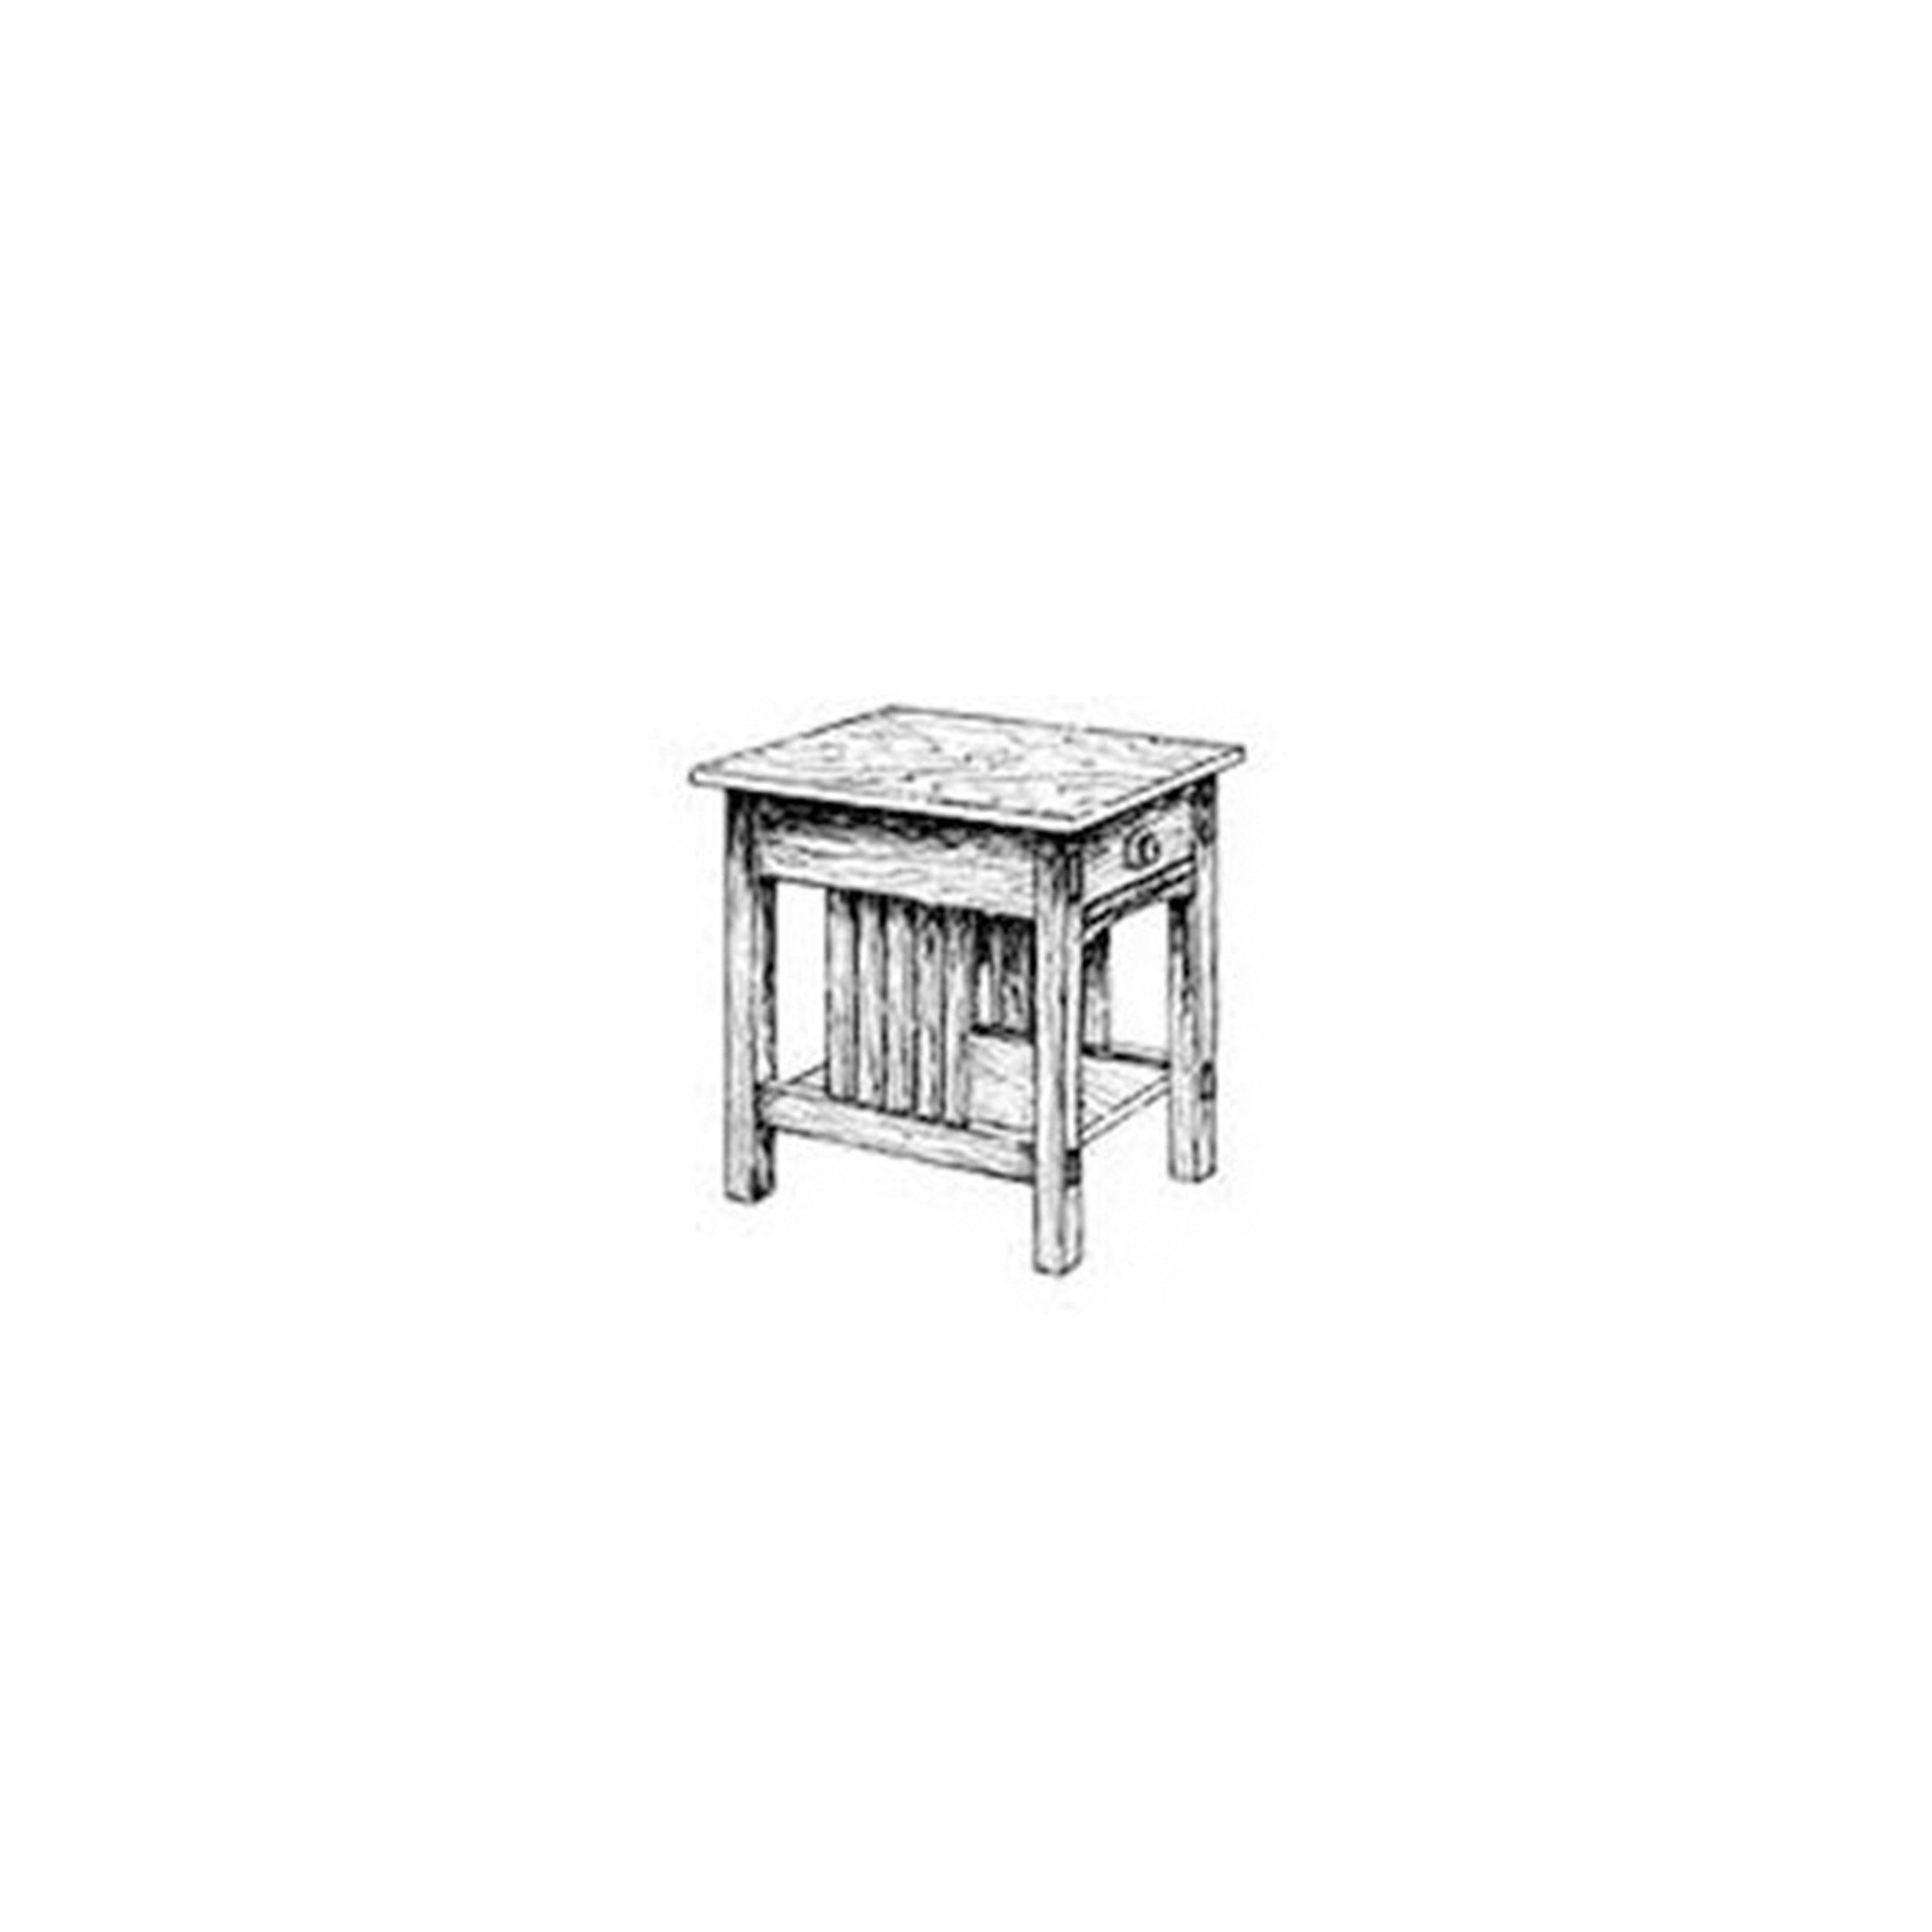 Woodworking Project Paper Plan to Build Mission End Table